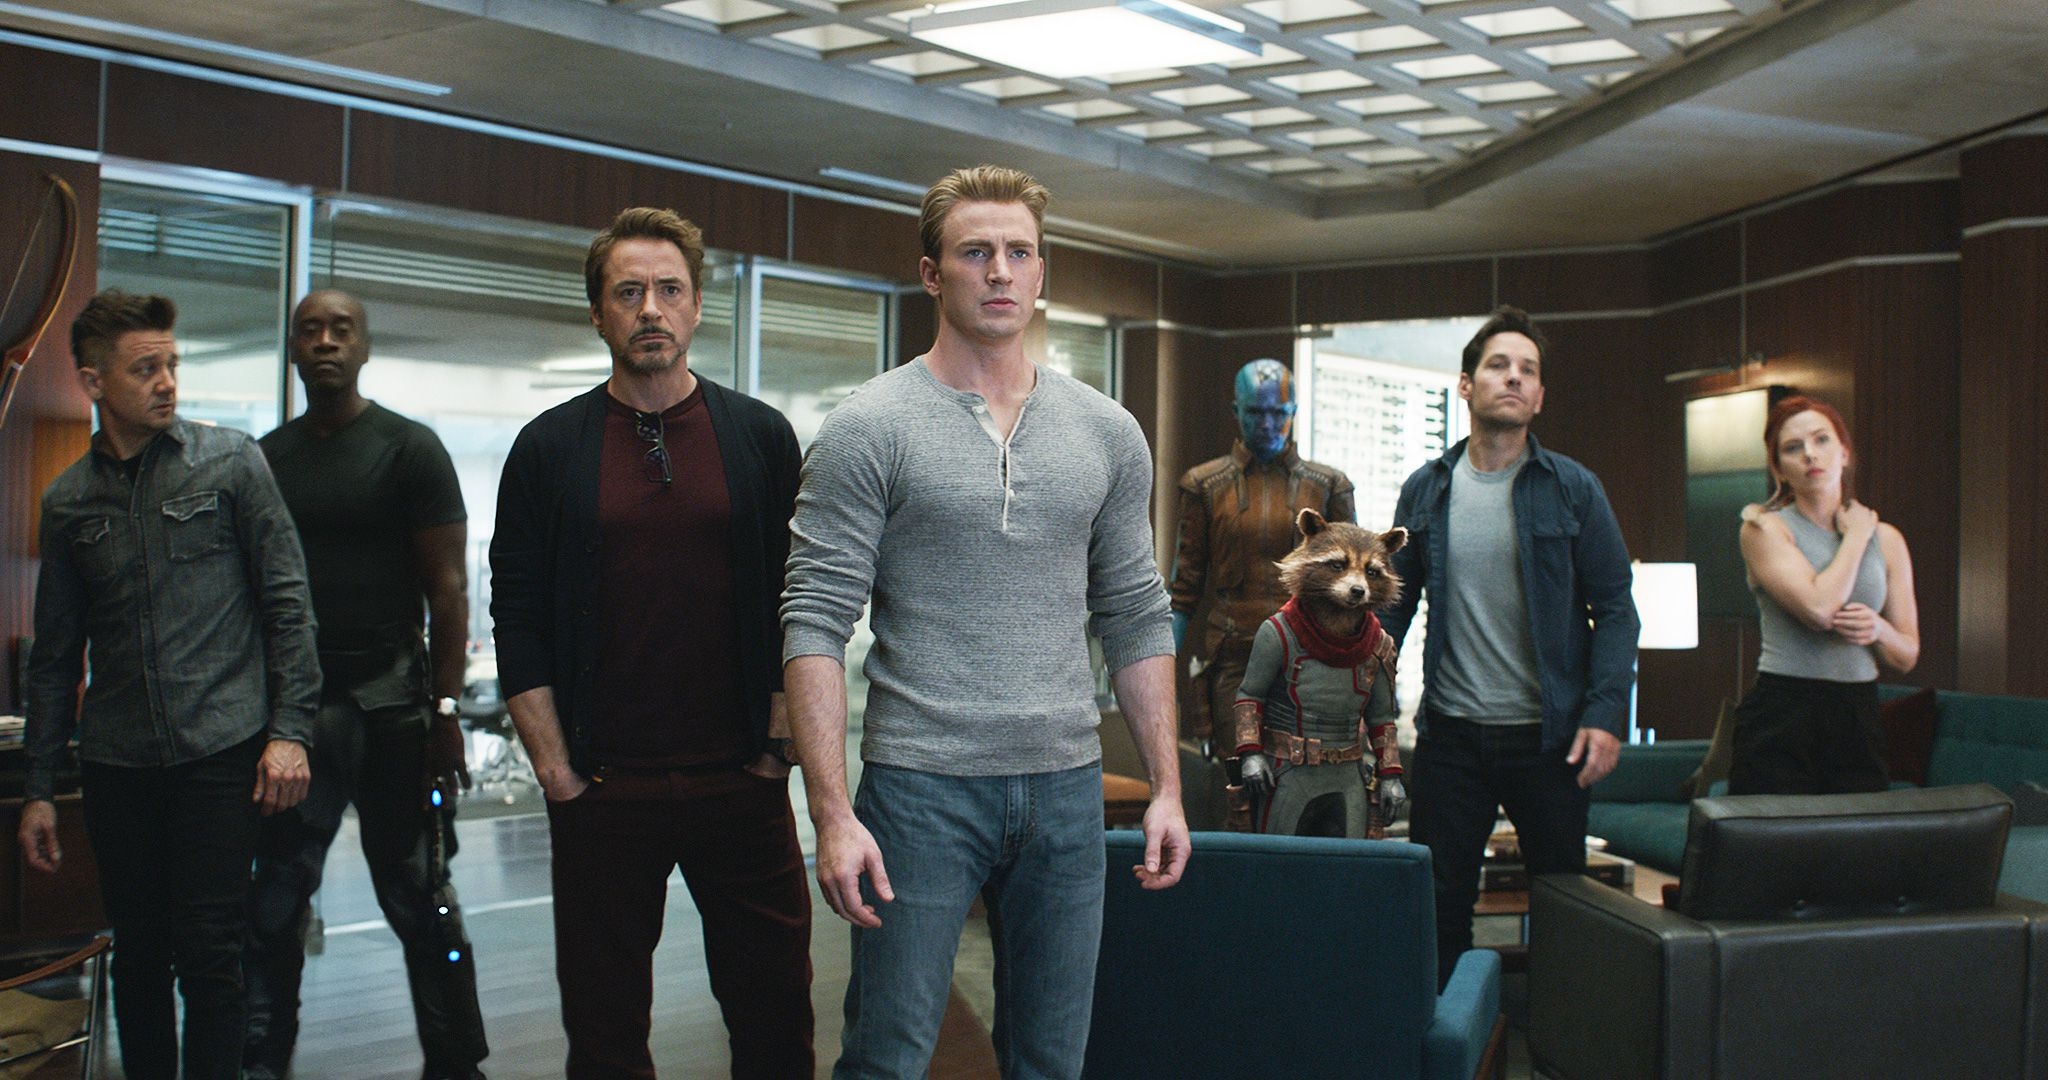 Avengers: Endgame Is The Biggest Film Of All Time